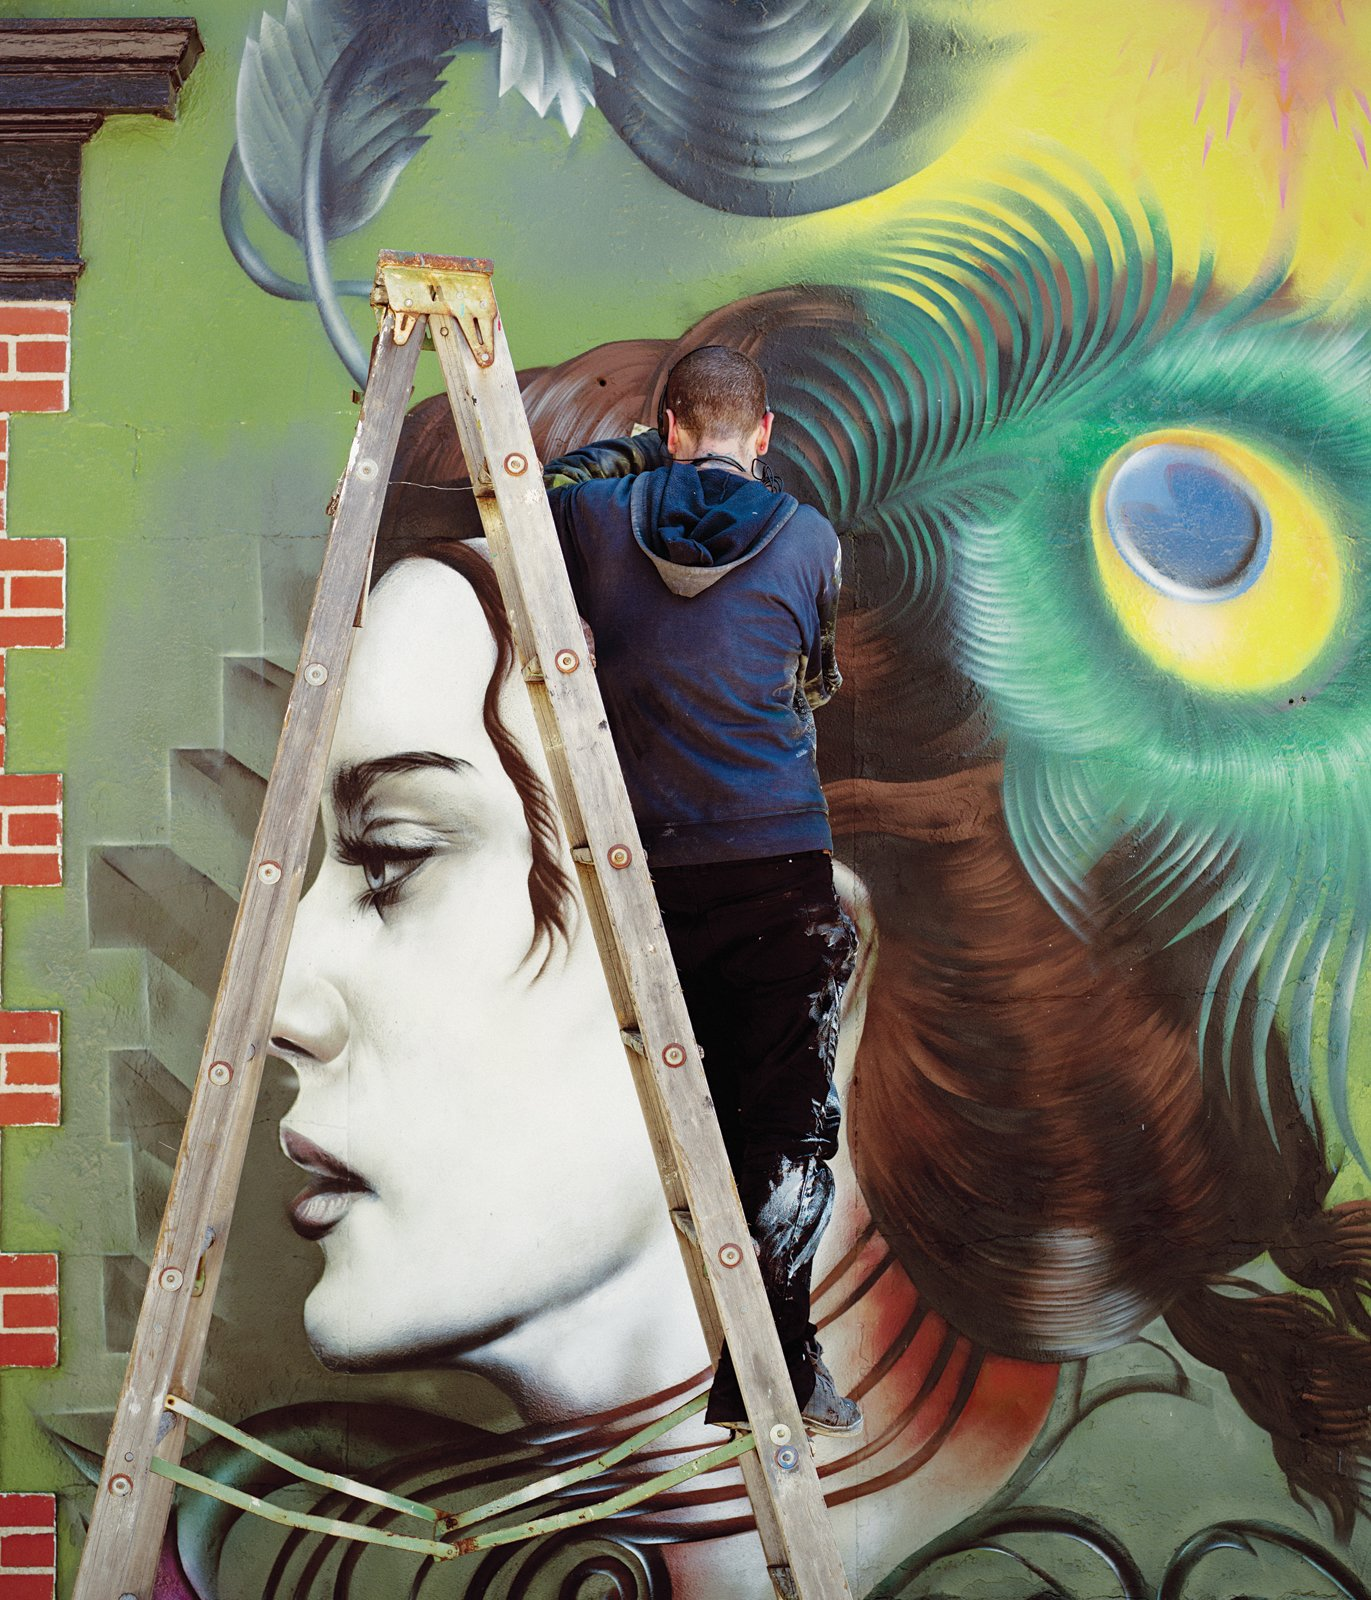 The new outdoor wall mural in progress by artist Seth Depiesse on Main Street. Building Community - Photo 5 of 13